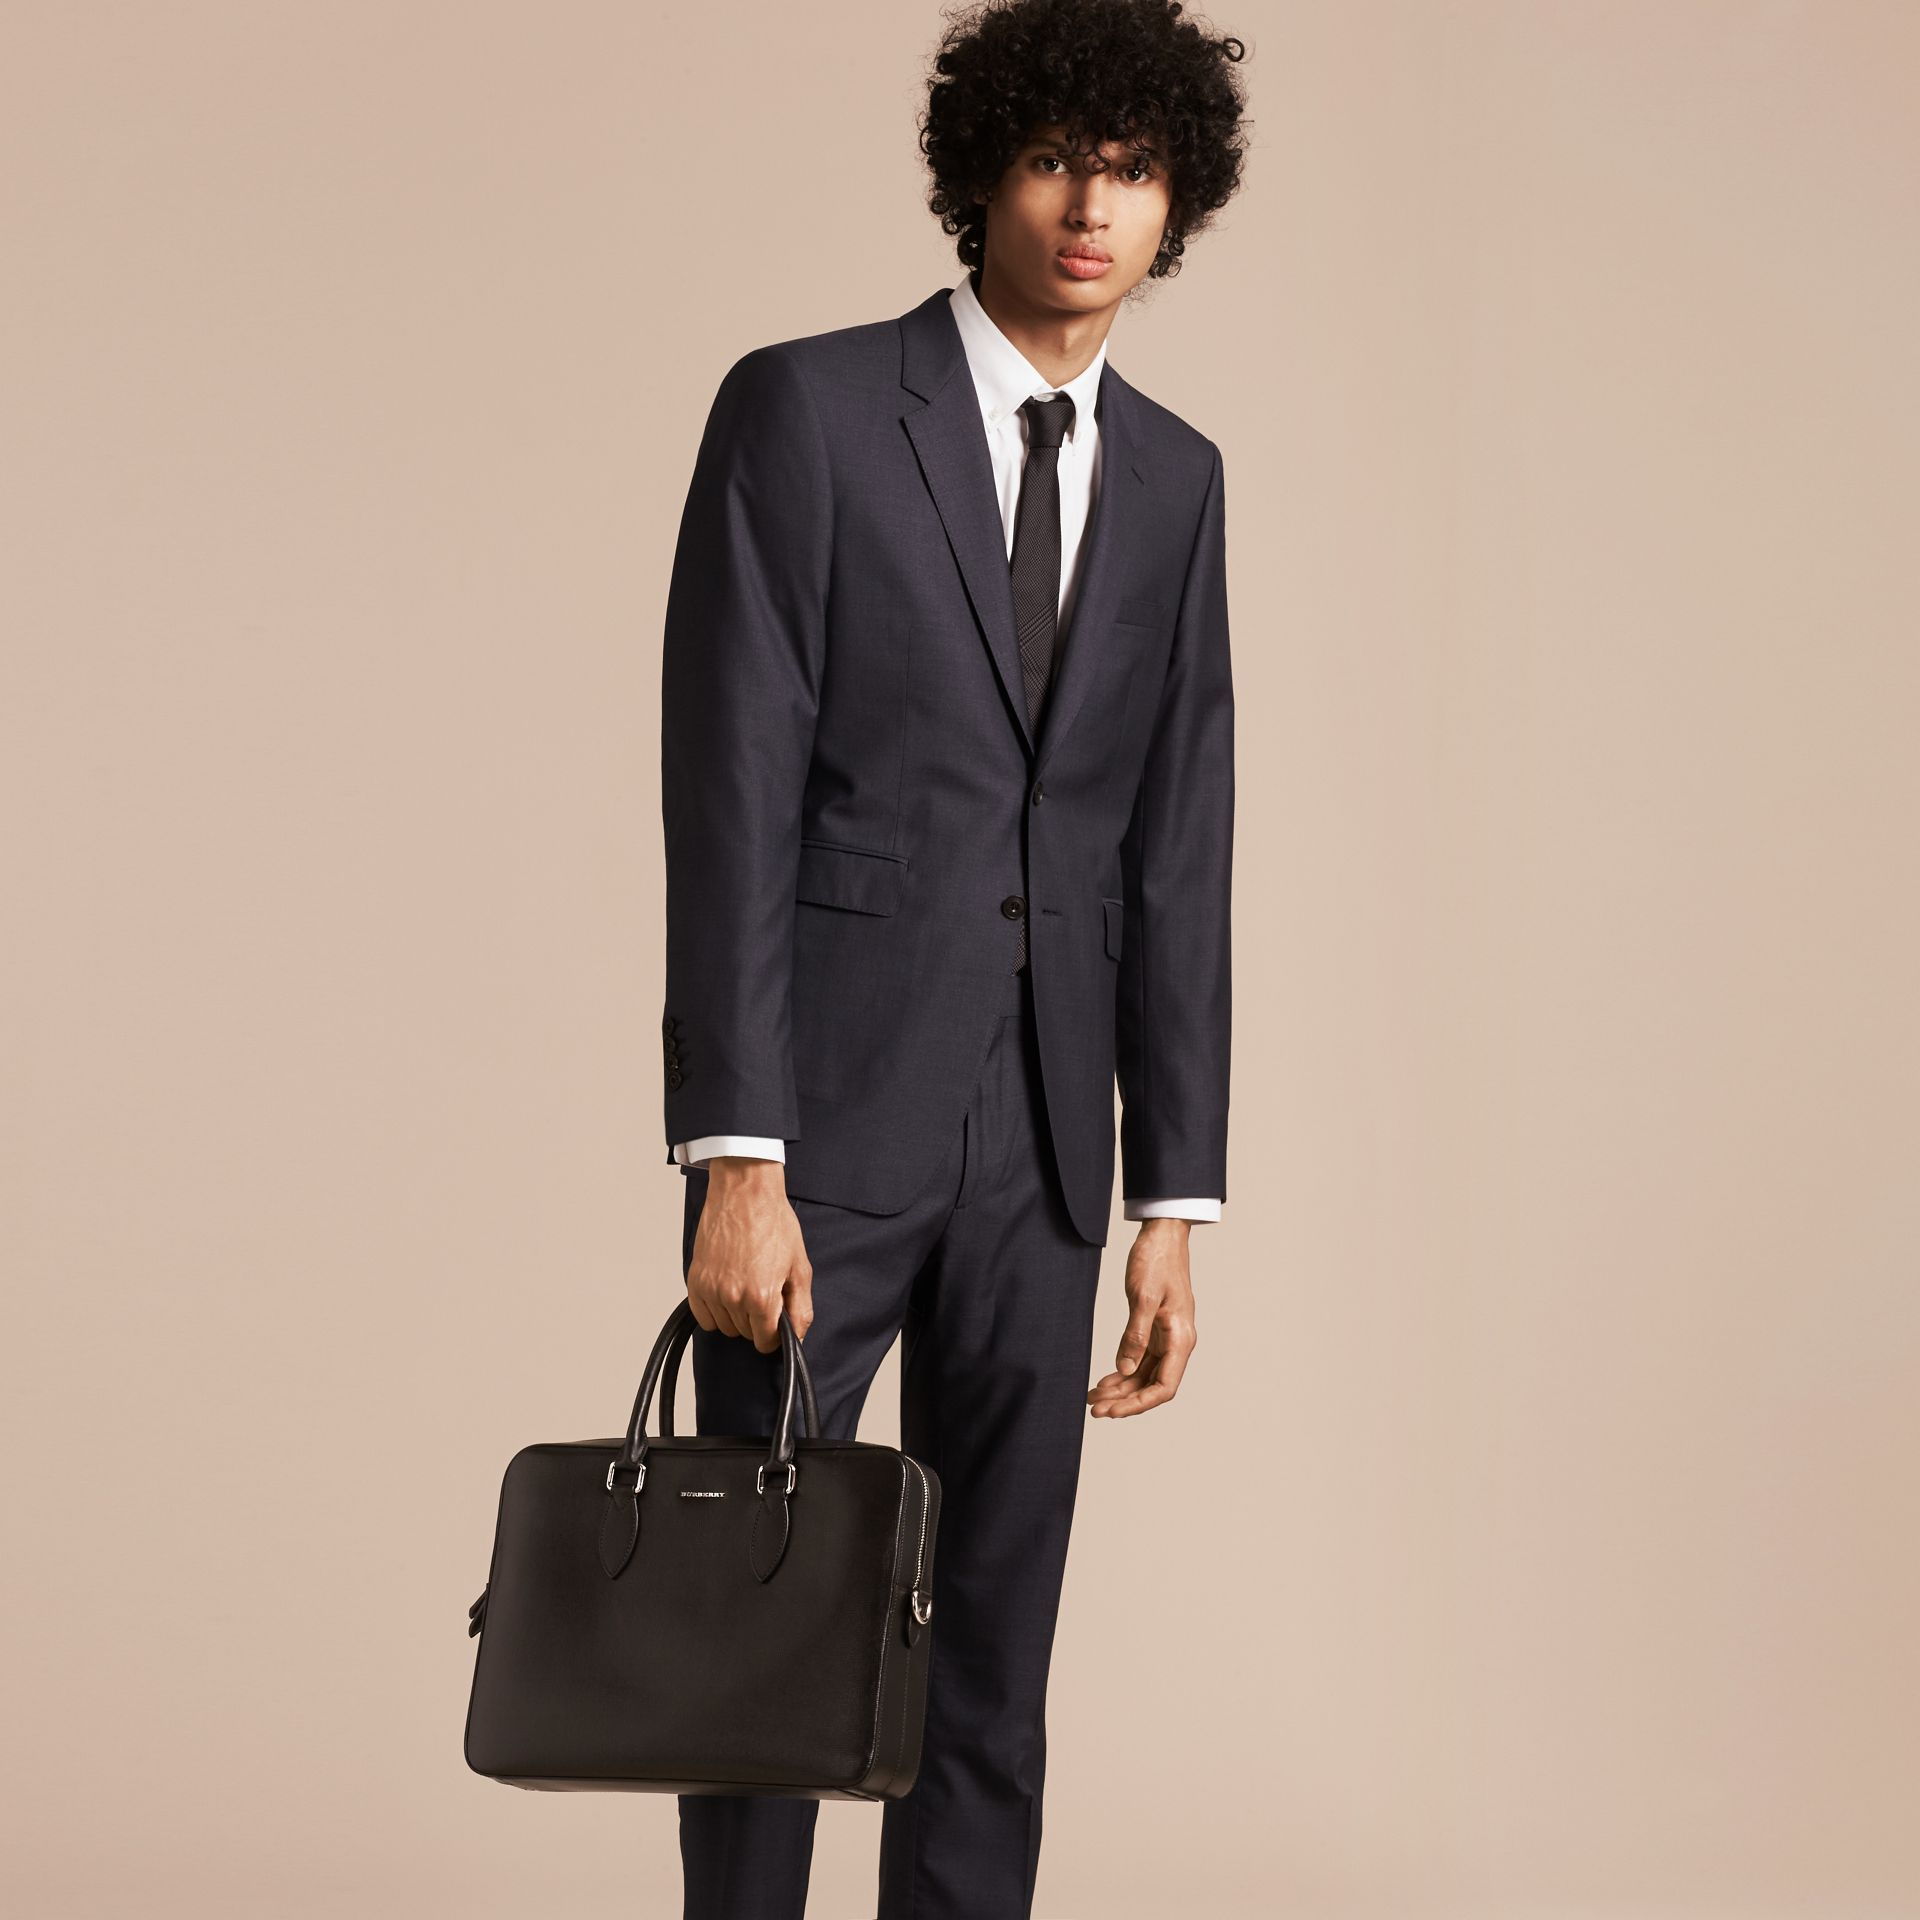 London Leather Briefcase in Black - Men | Burberry Canada - gallery image 2